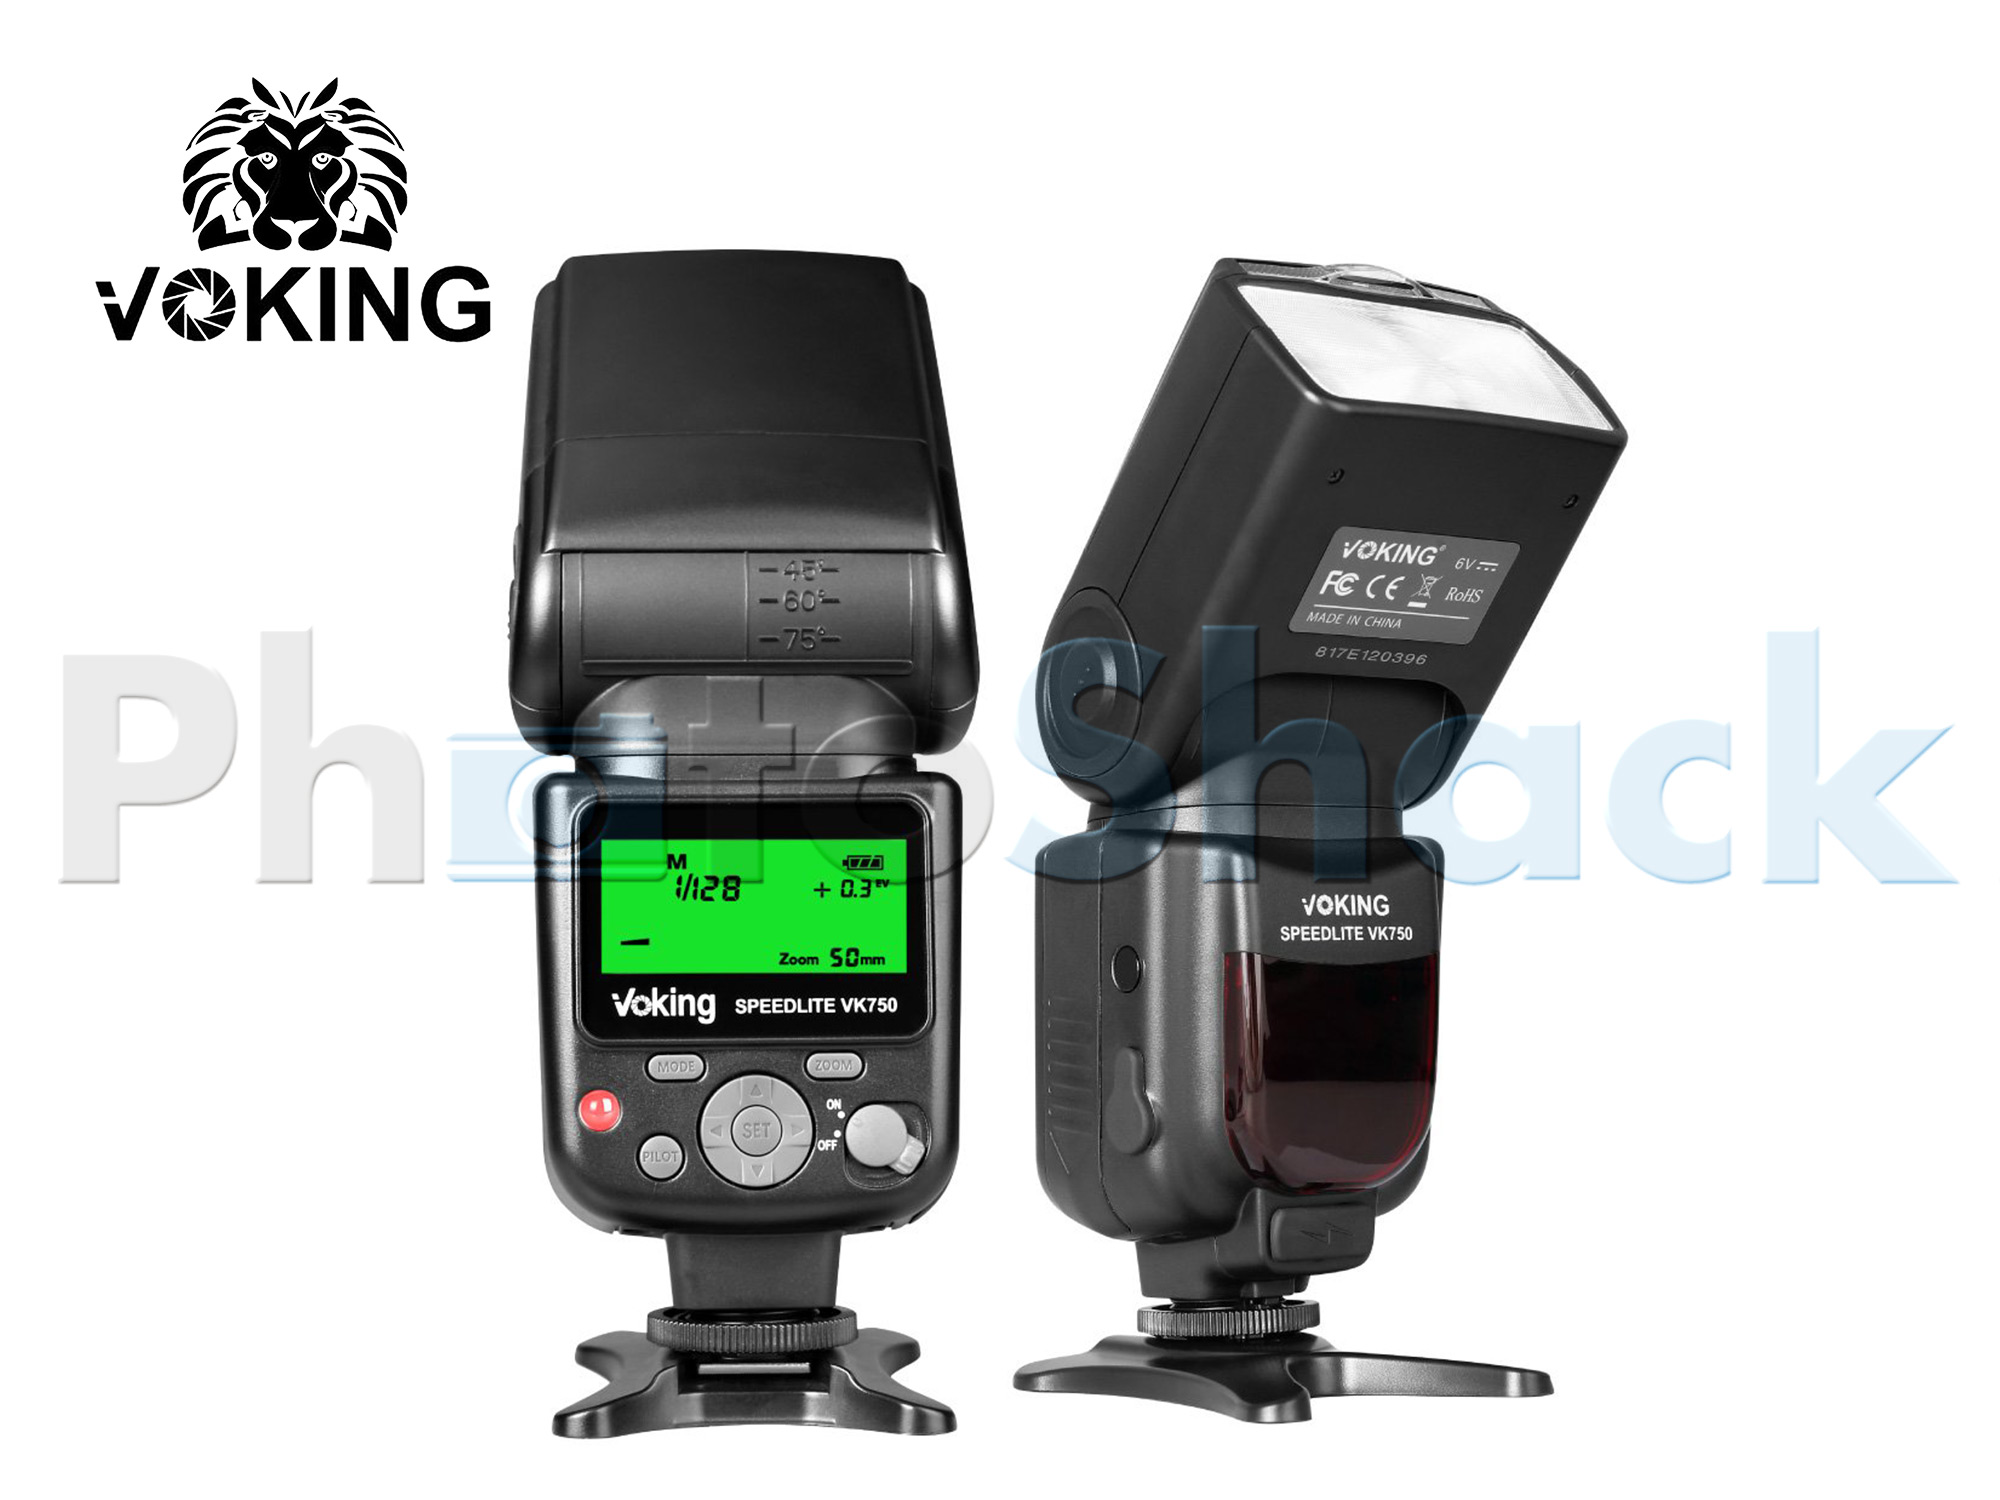 VOKING VK750 Flash - GN58 Manual Flash Speedlite